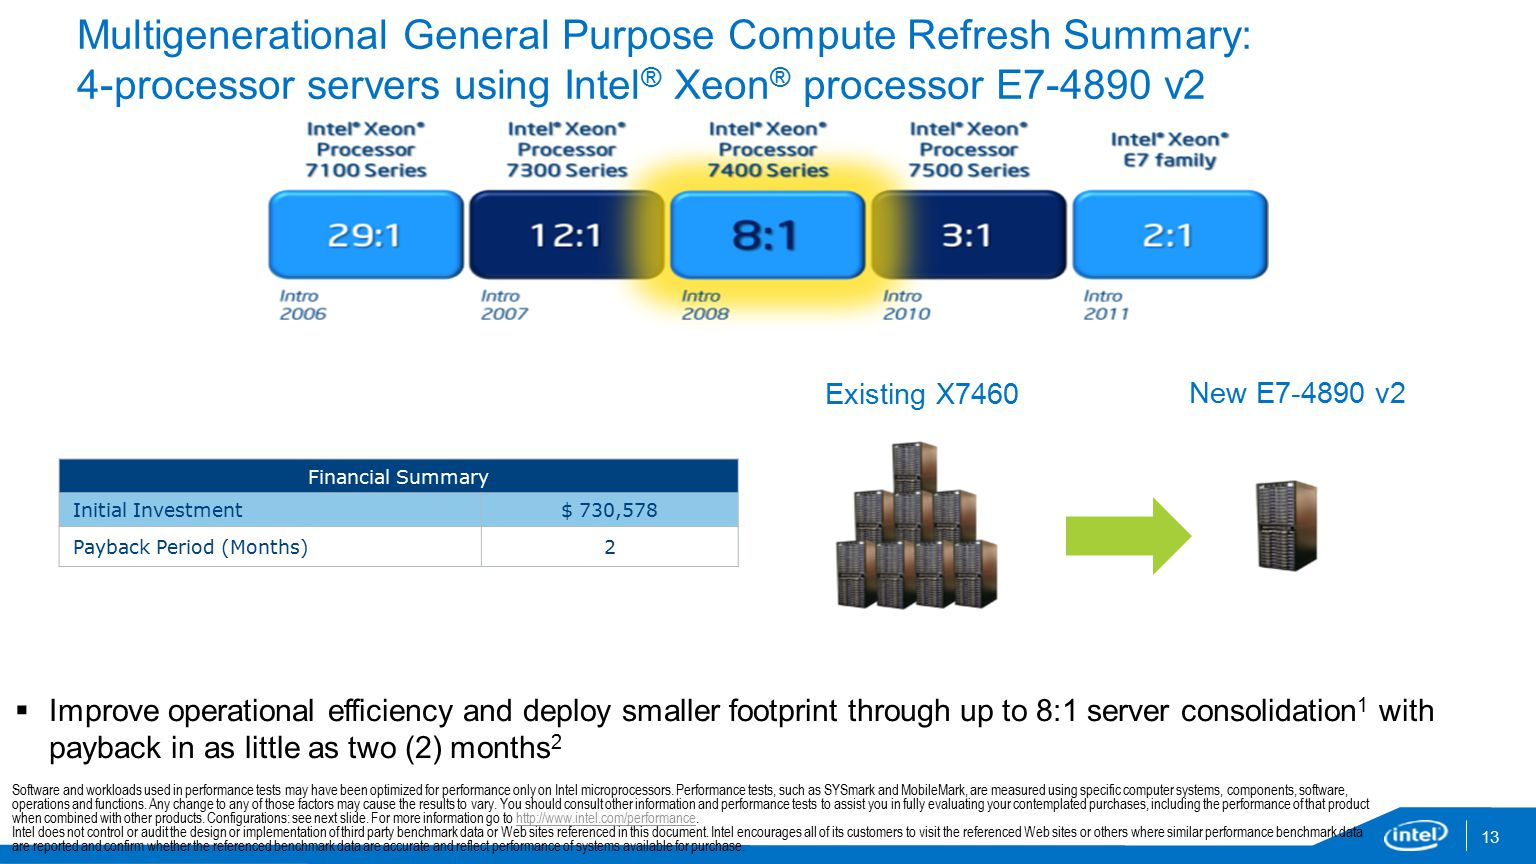 Multigenerational General Purpose Compute Refresh Summary: 4-processor servers using Intel ® Xeon ® processor E7-4890 v2  Improve operational efficiency and deploy smaller footprint through up to 8:1 server consolidation 1 with payback in as little as two (2) months 2 13 Existing X7460 New E7-4890 v2 Financial Summary Initial Investment$ 730,578 Payback Period (Months)2 Software and workloads used in performance tests may have been optimized for performance only on Intel microprocessors.